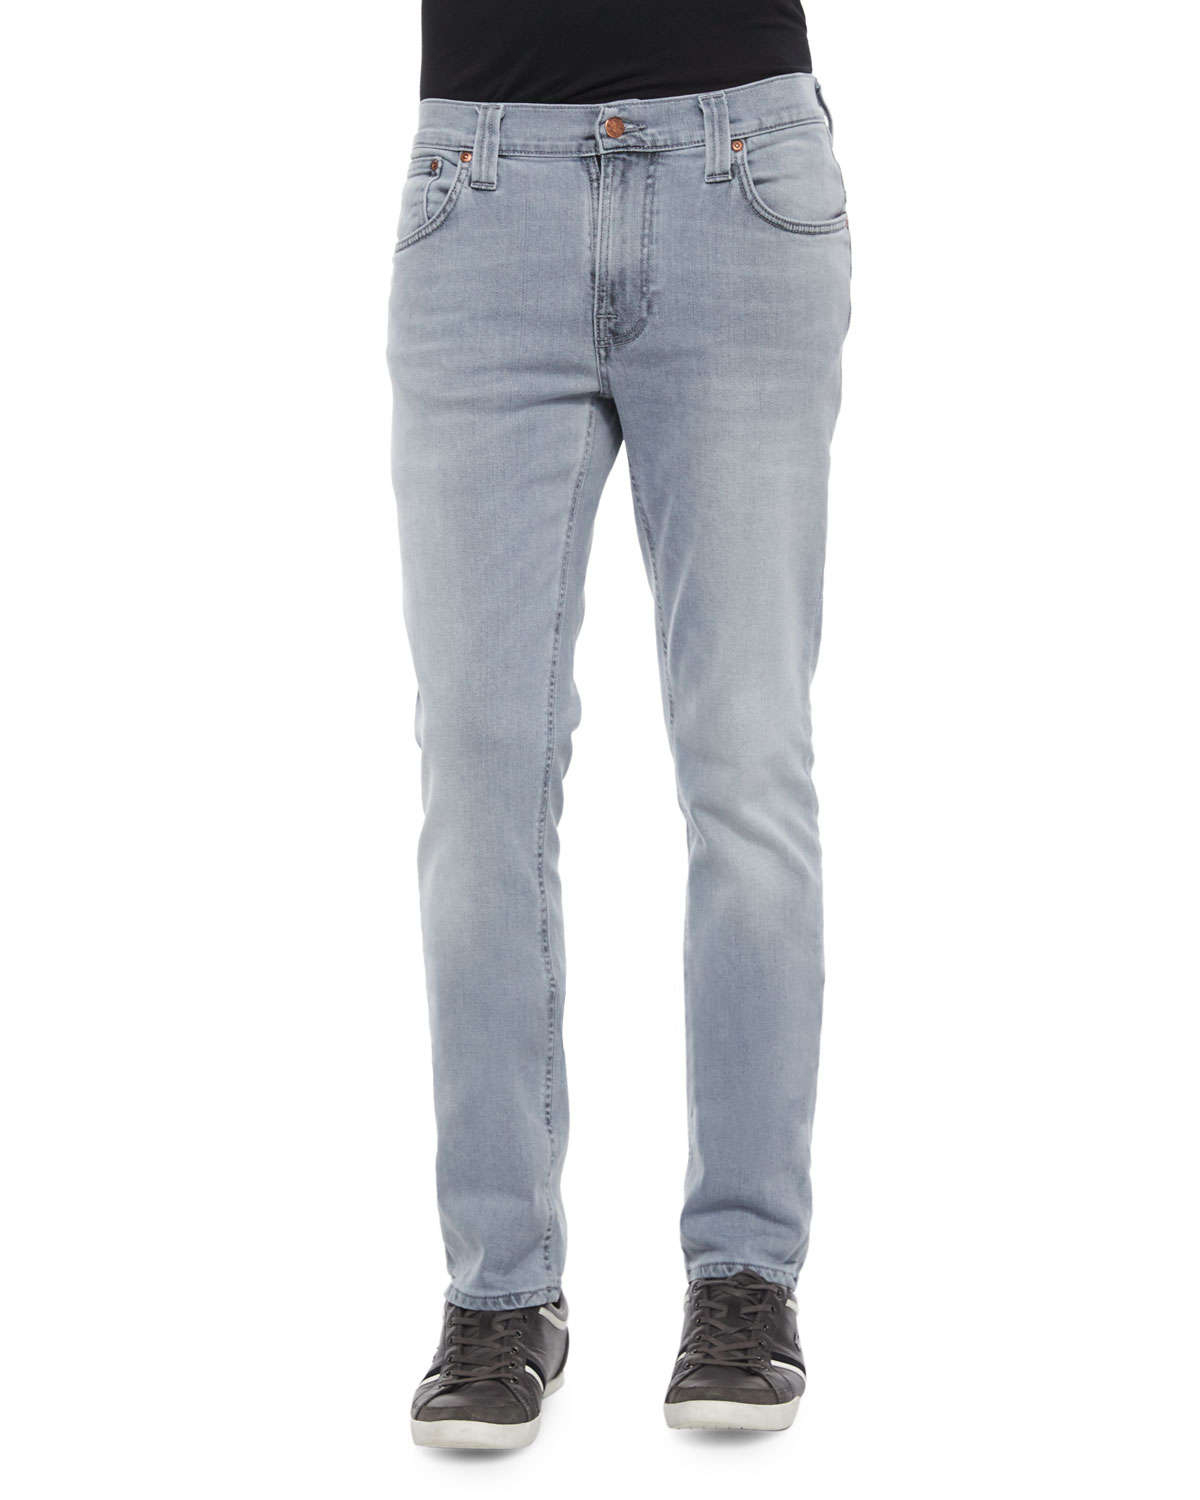 Nudie jeans Thin Finn Pale Lead Washed Denim Jeans in Gray for Men ...